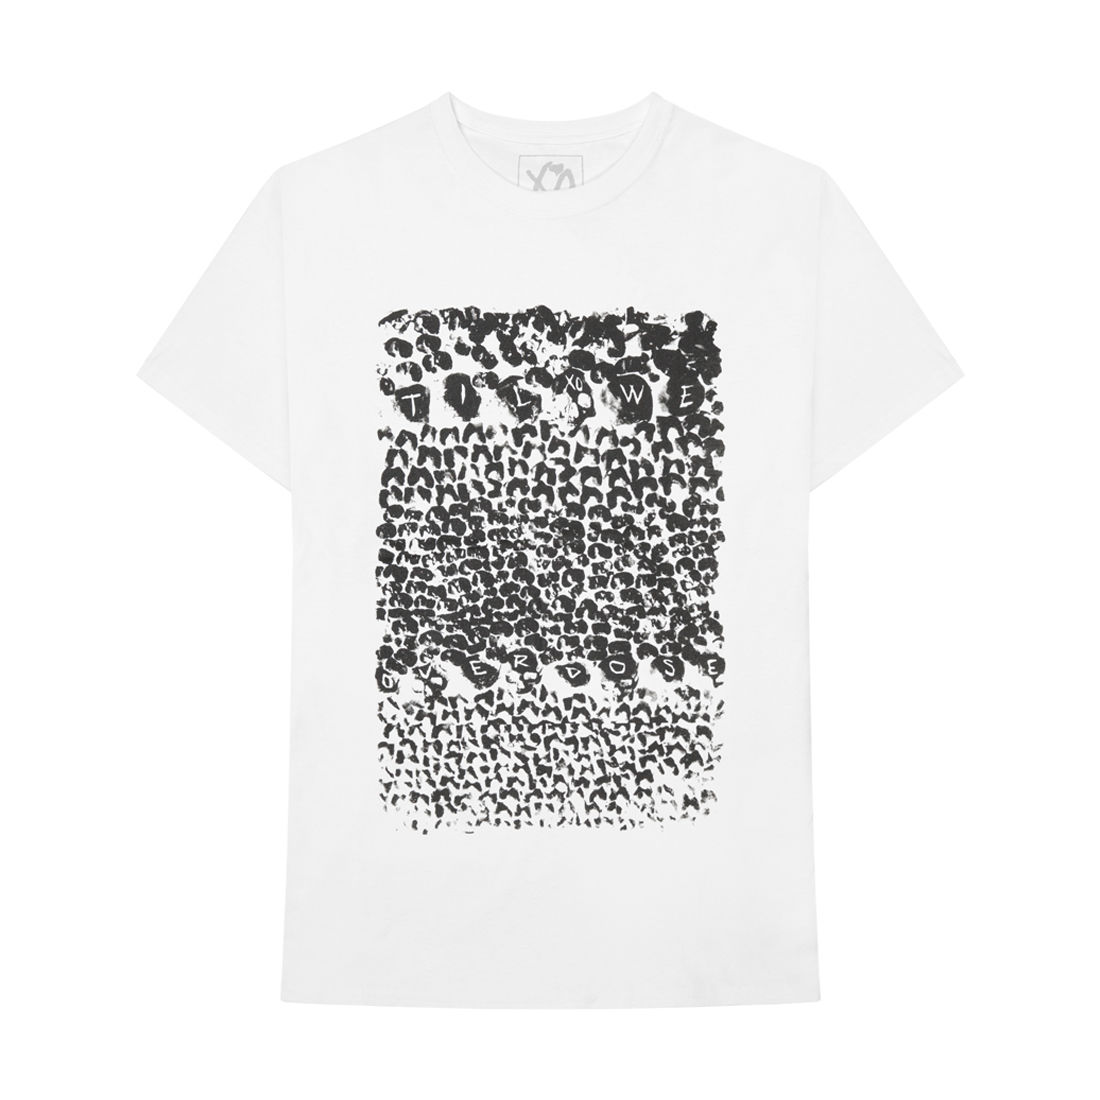 The Weeknd: AFTERLIFE TEE - S